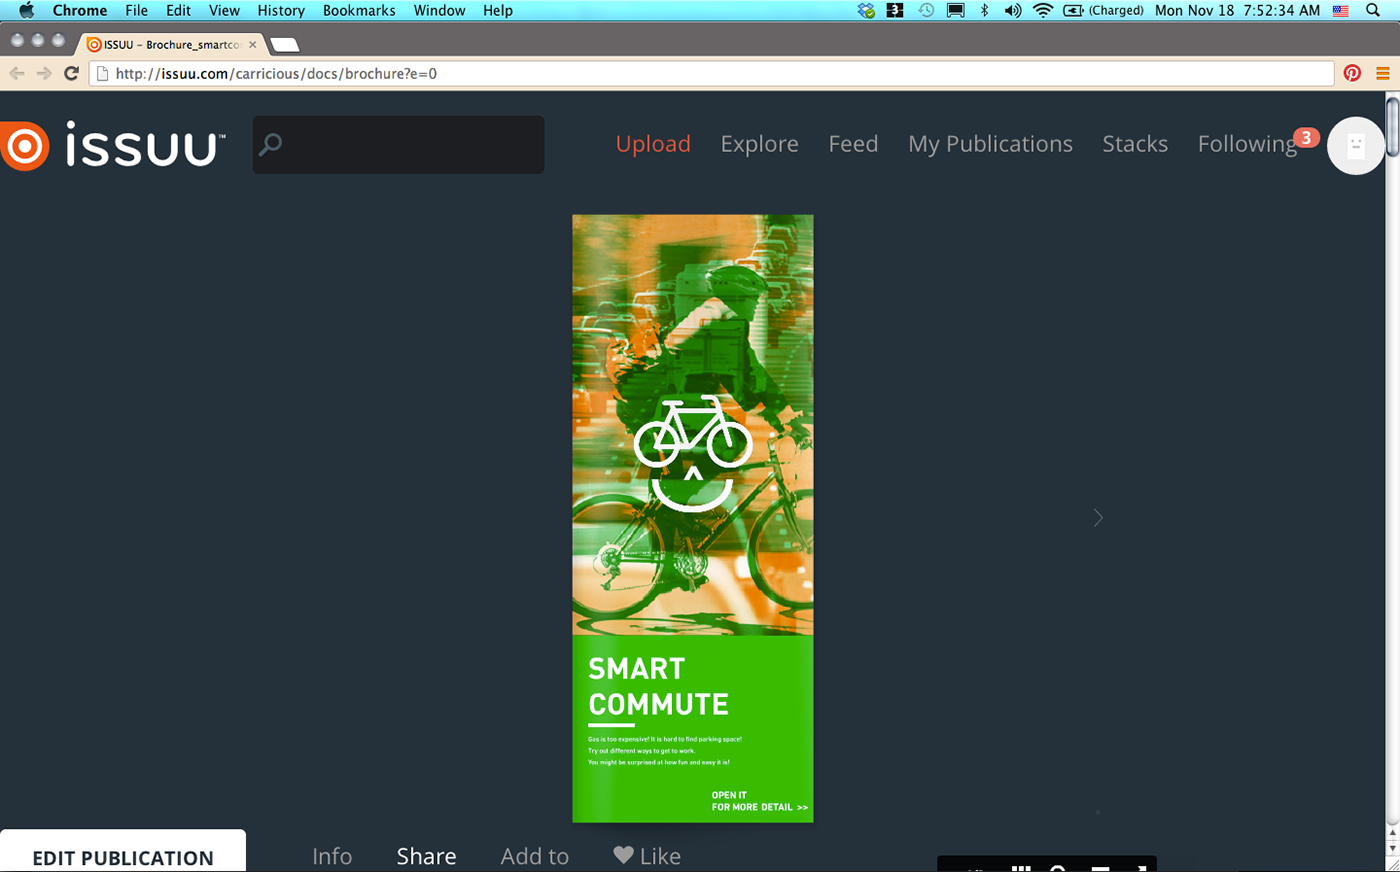 How to embed issuu in my behance? on Behance